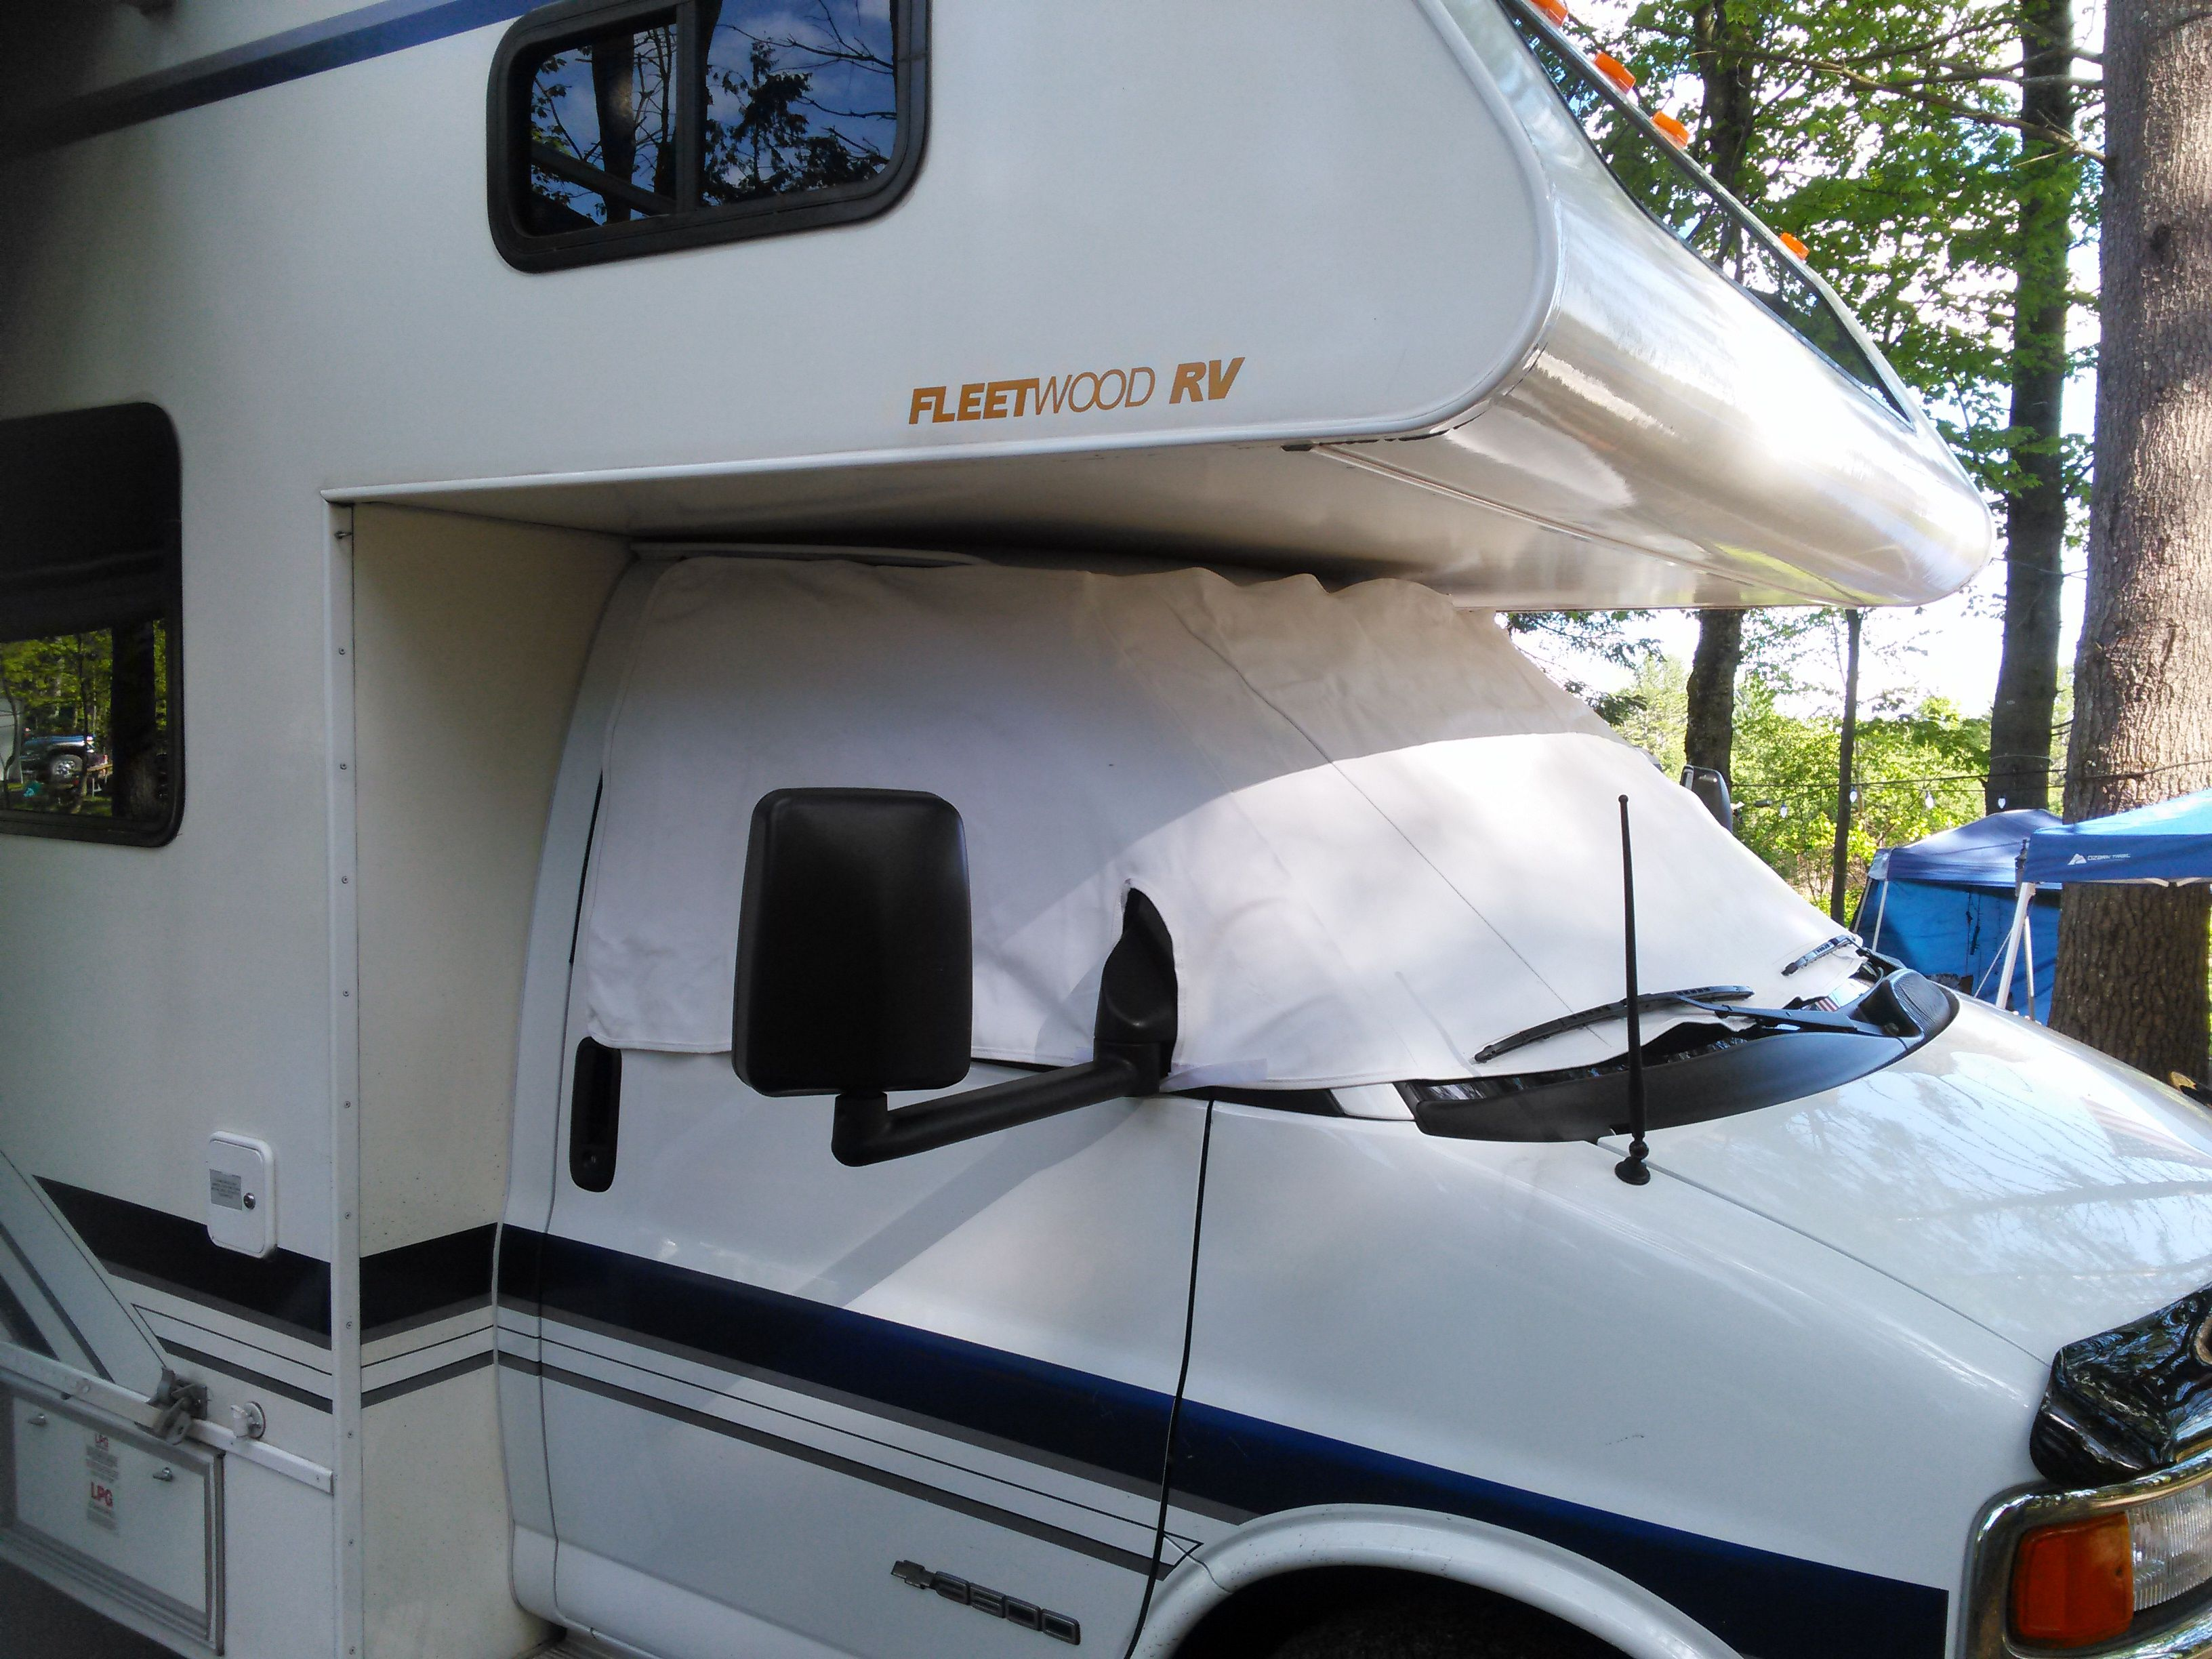 Pin by Beth Smally on RV tips | Motorhome accessories, Rv